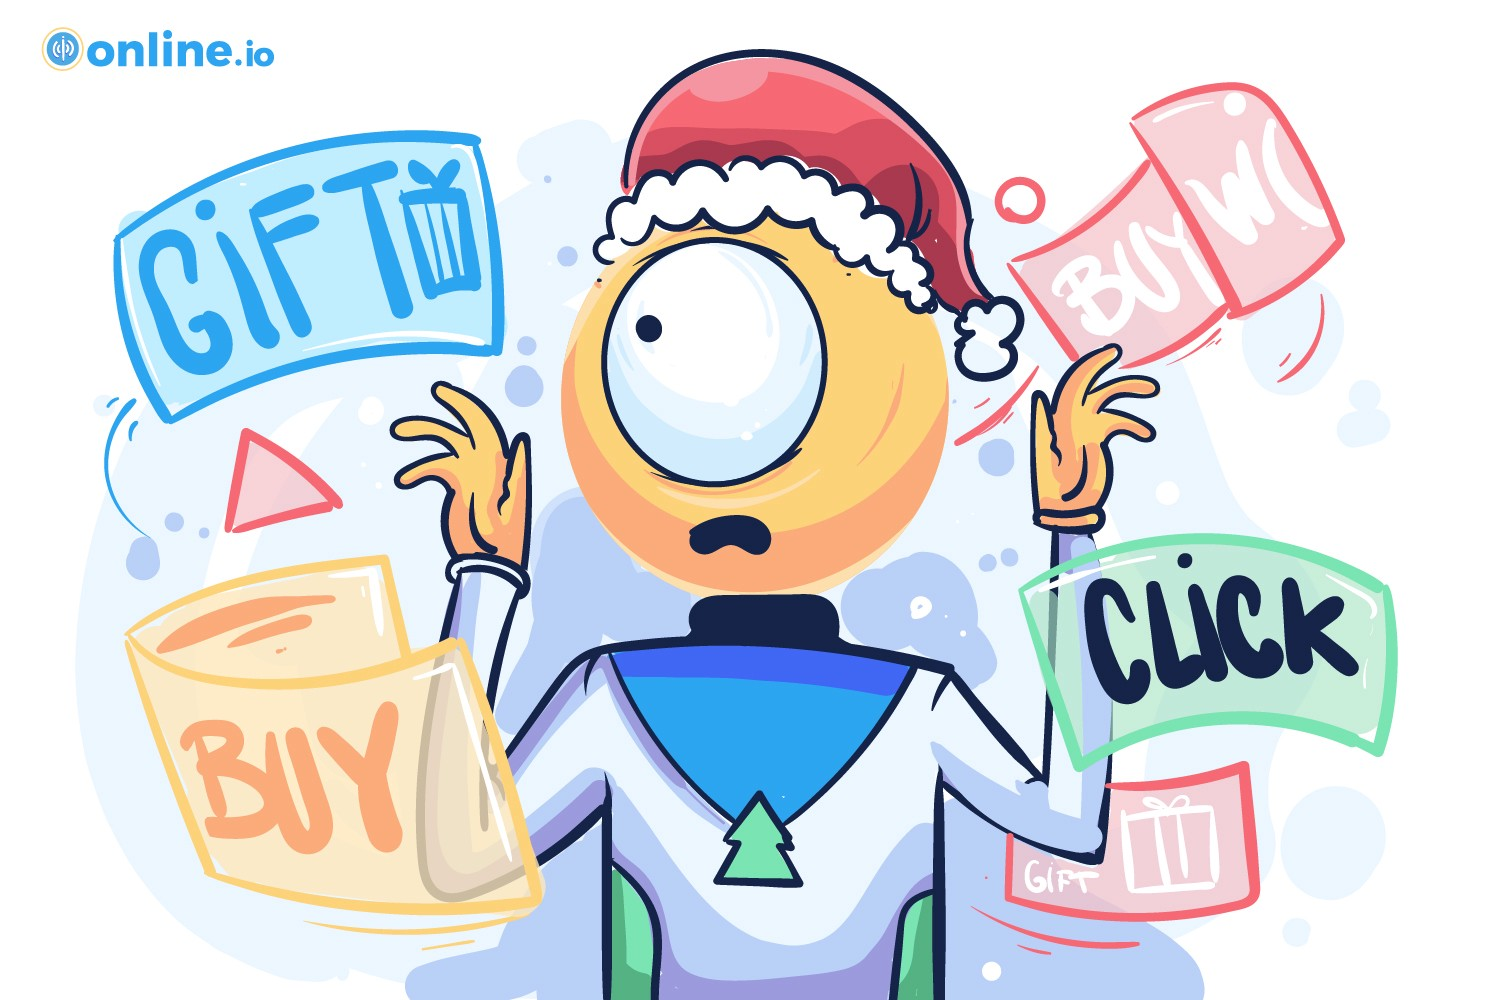 Five Online Scams To Avoid This Christmas By Tyler B Online Io Blockchain Technologies Medium